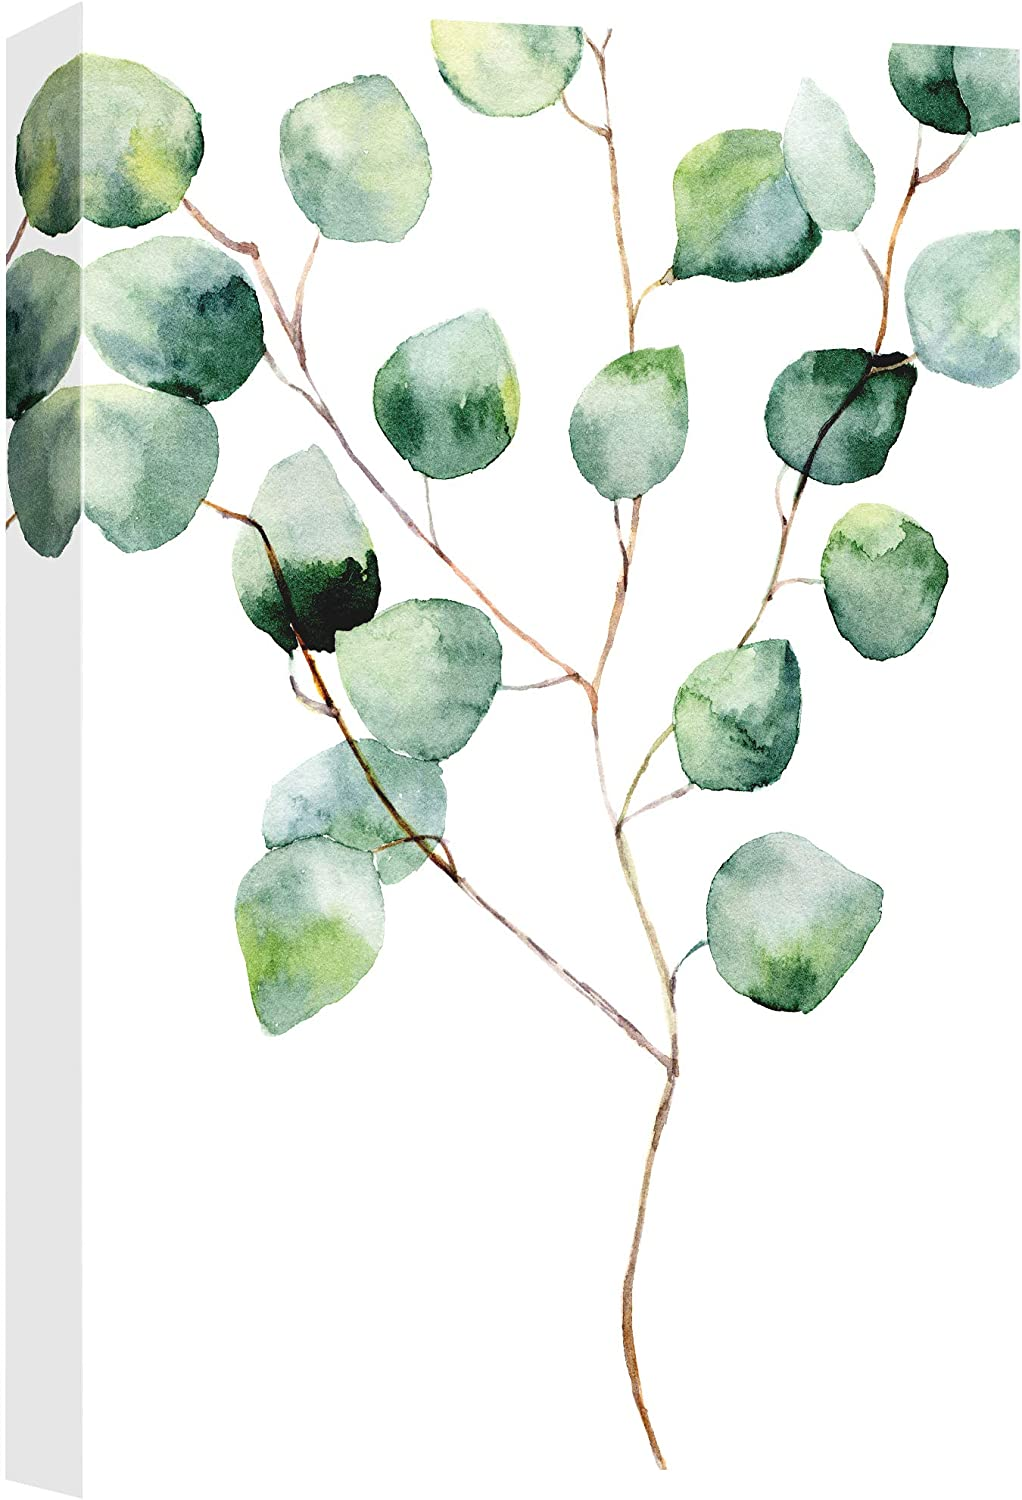 B2T NWT Canvas Wall Art Silver Dollar Eucalyptus Watercolor Floral Painting Artwork for Home Prints Framed - 24x36 inches